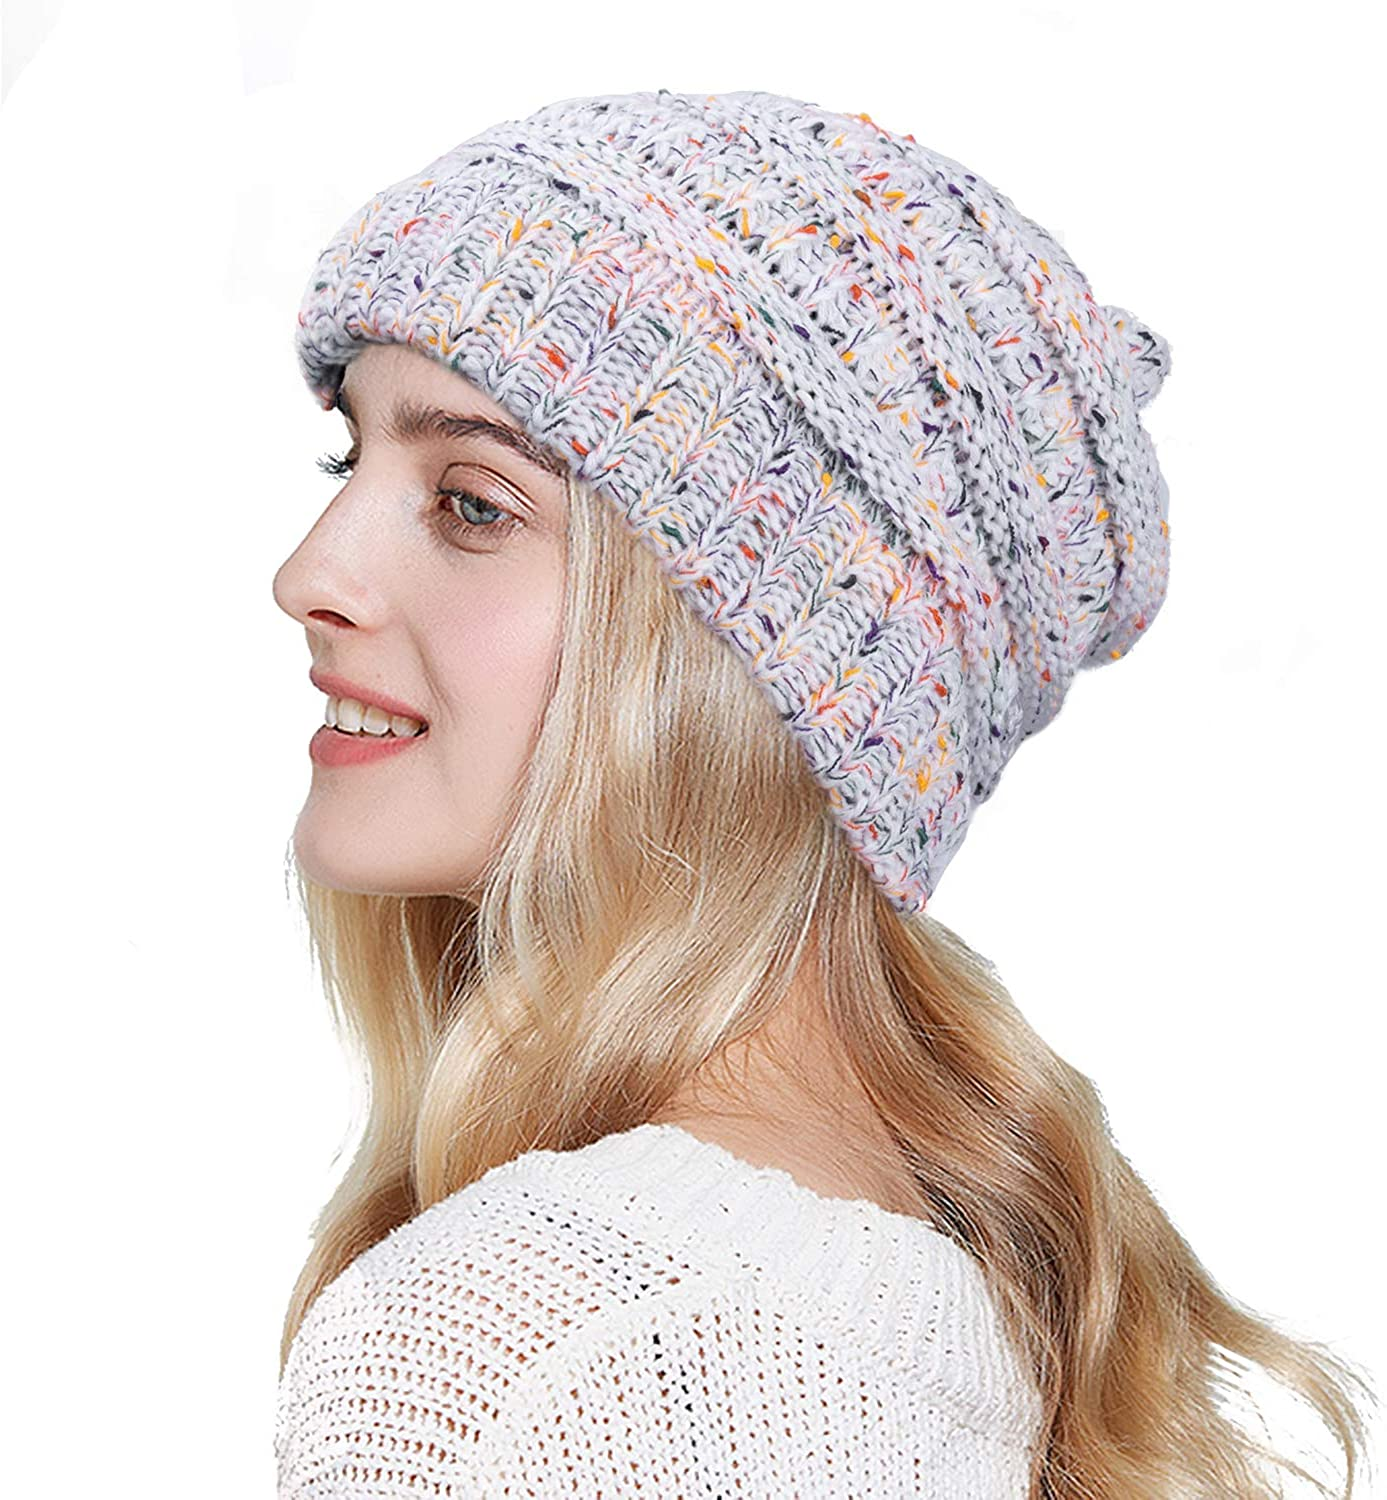 RJVW Knit Beanie Hat for Women wholesale Winter Slouchy Max 76% OFF Soft Warm Thick